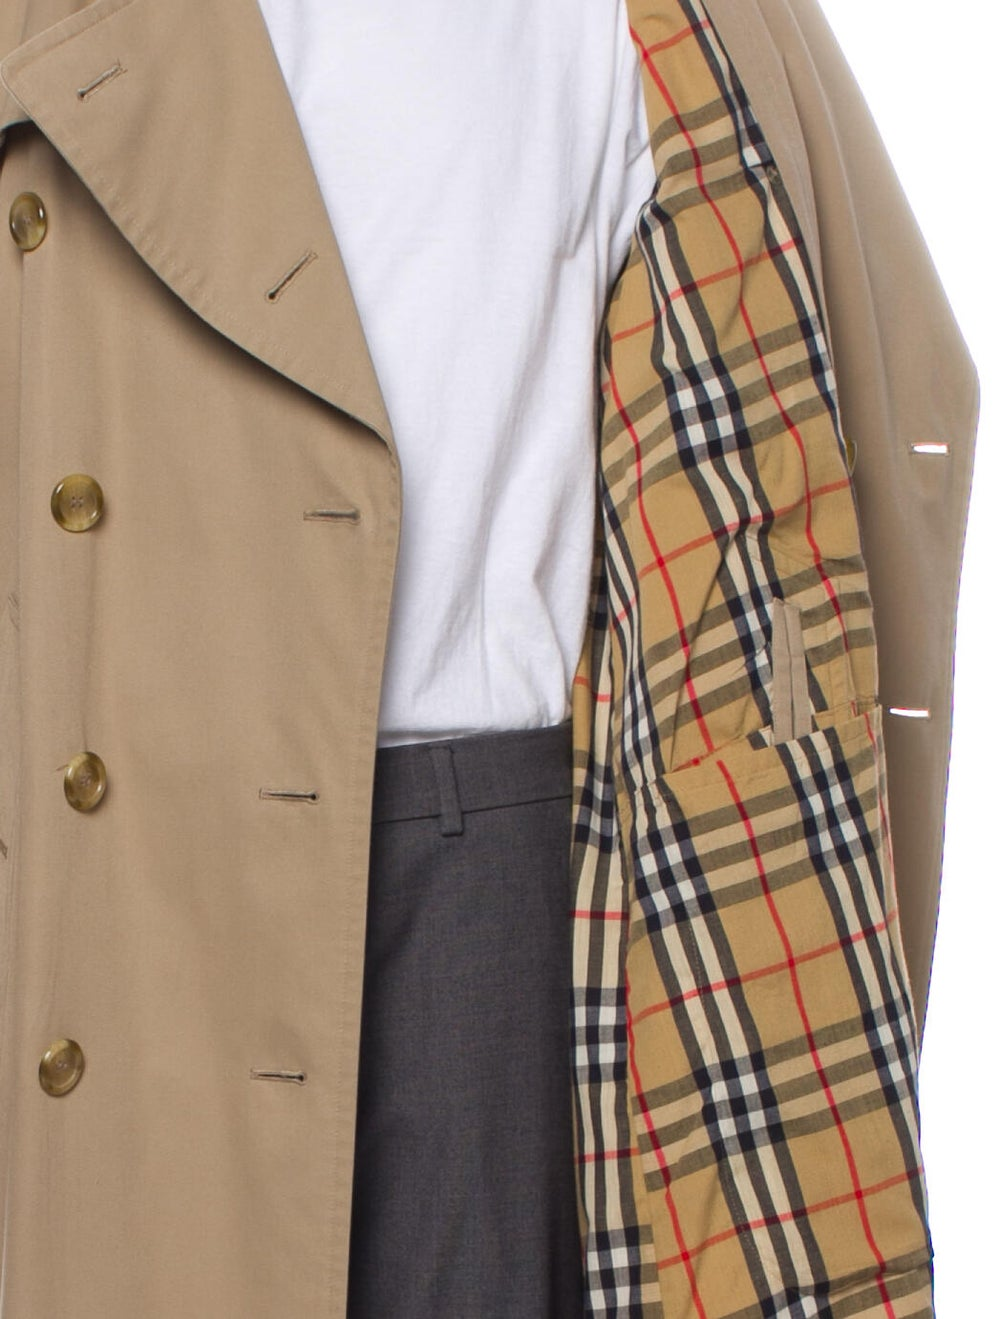 Burberry Trench Coat - image 4